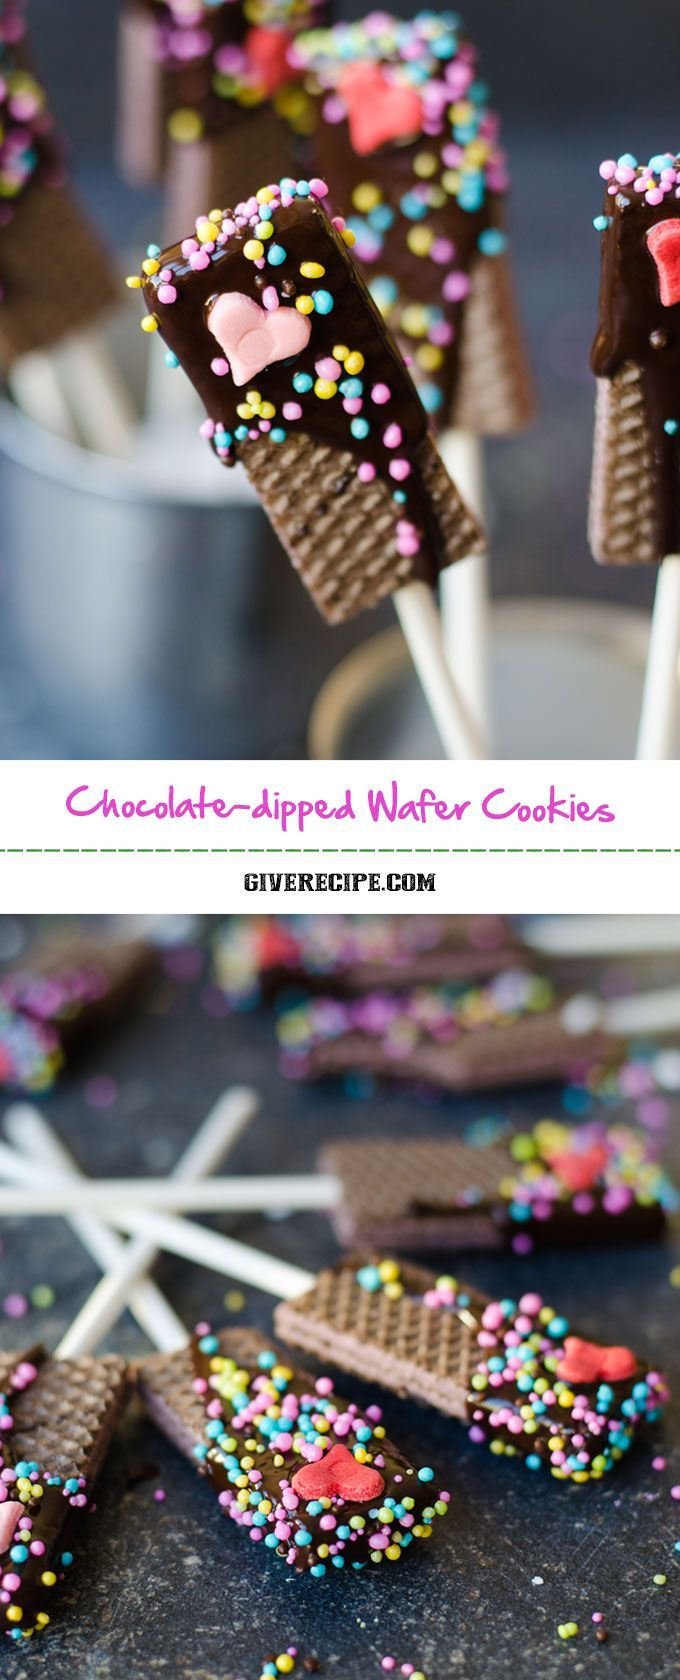 Chocolate Dipped Wafer Cookies are the easiest, cheapest, cutest and yummiest treats for special occasions like Valentine's Day. | http://giverecipe.com | #valentinesday #wafers